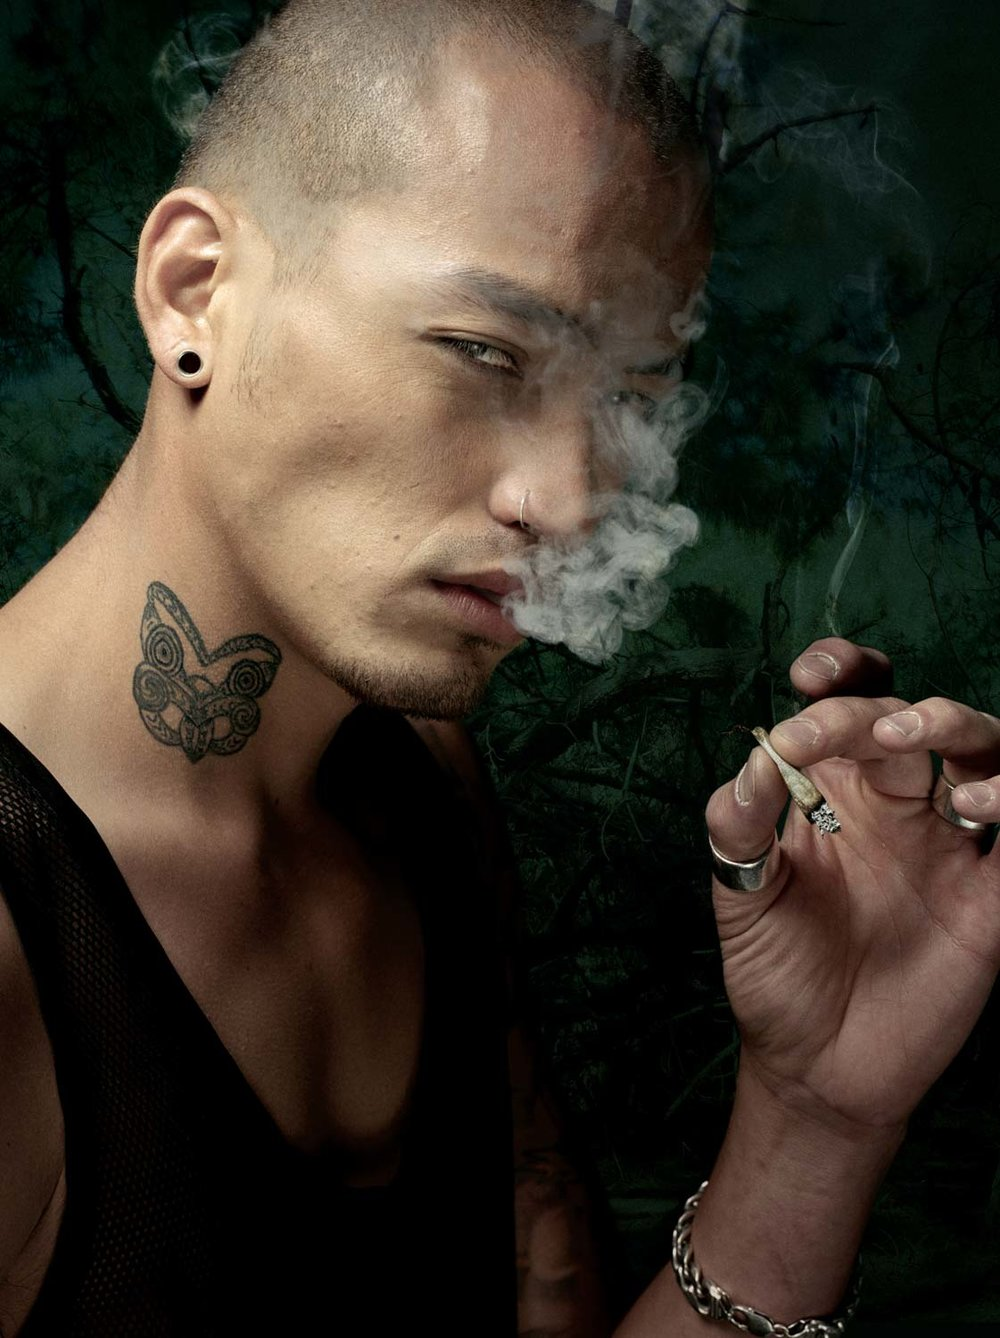 Serious Man Man With Tattoo On His Neck, Smoking